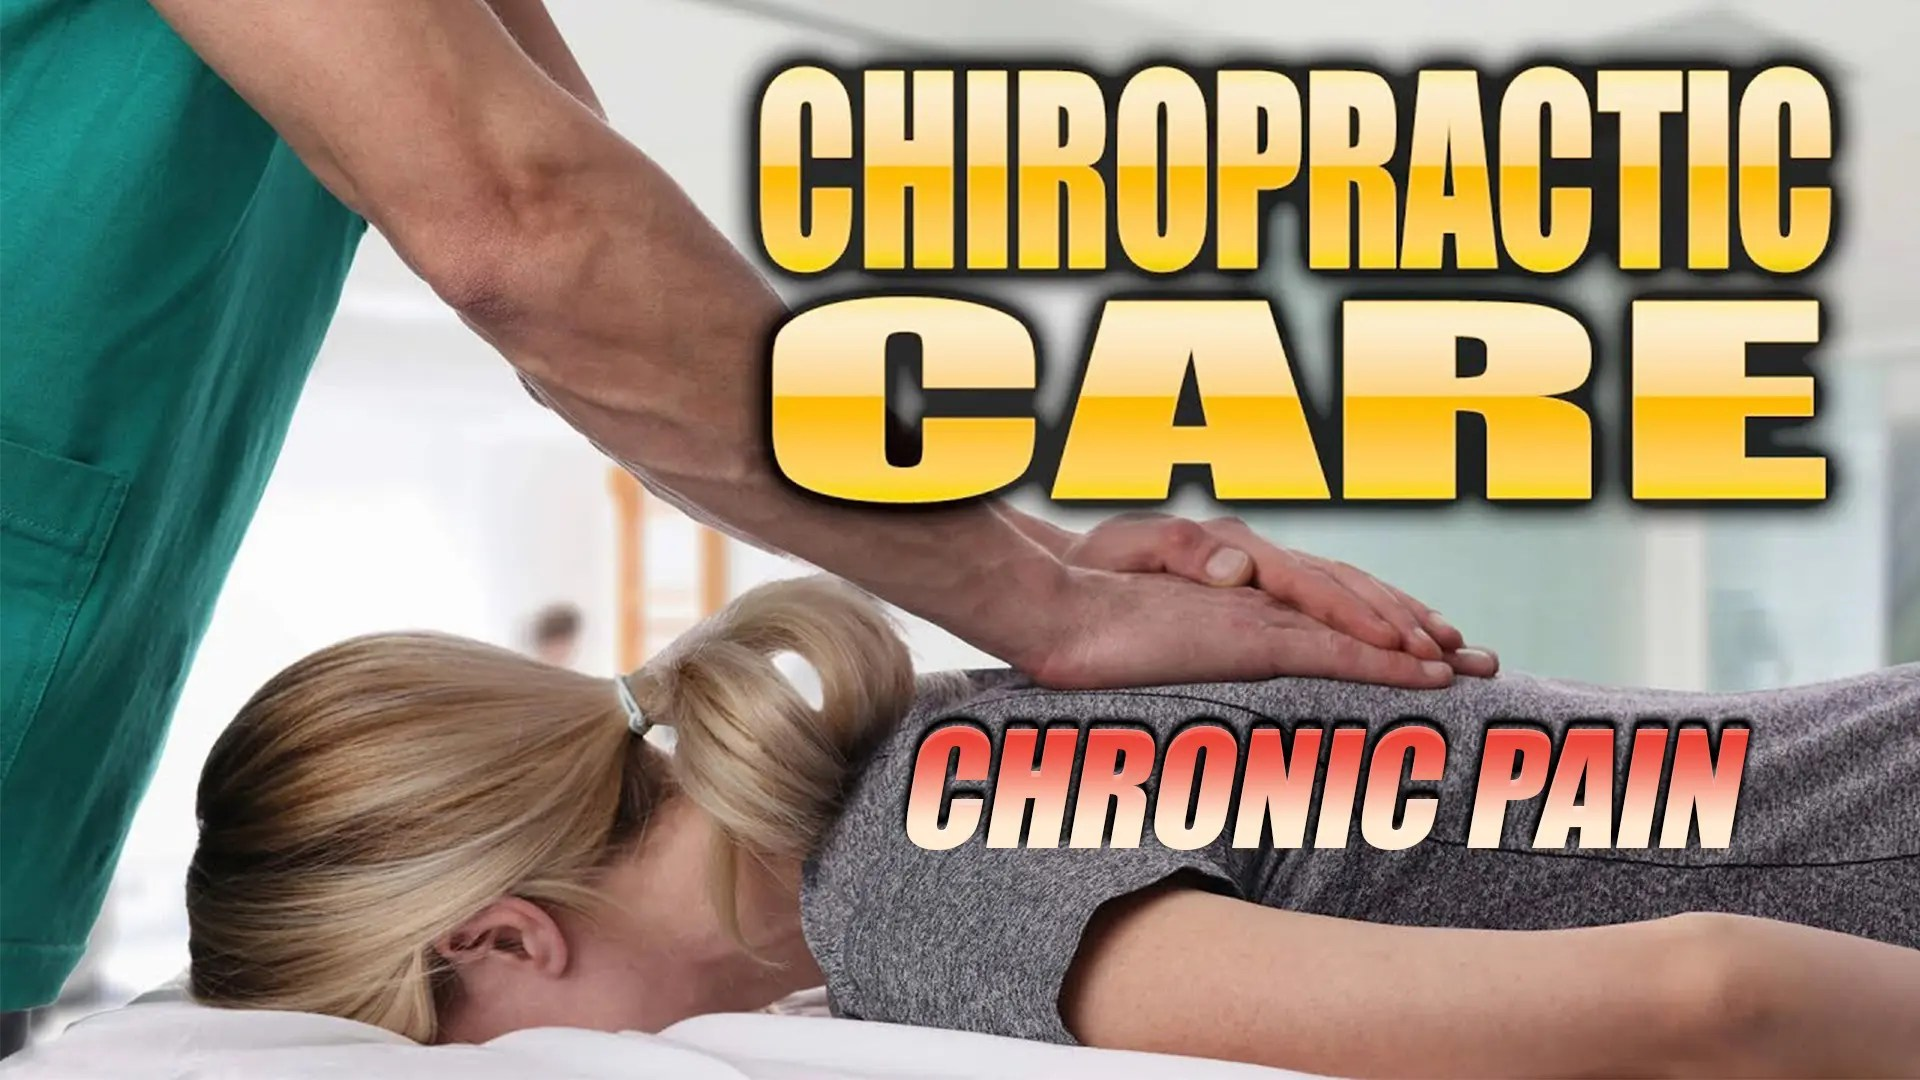 Chronic Pain Treatment With Chiropractic In El Paso, TX. | Video